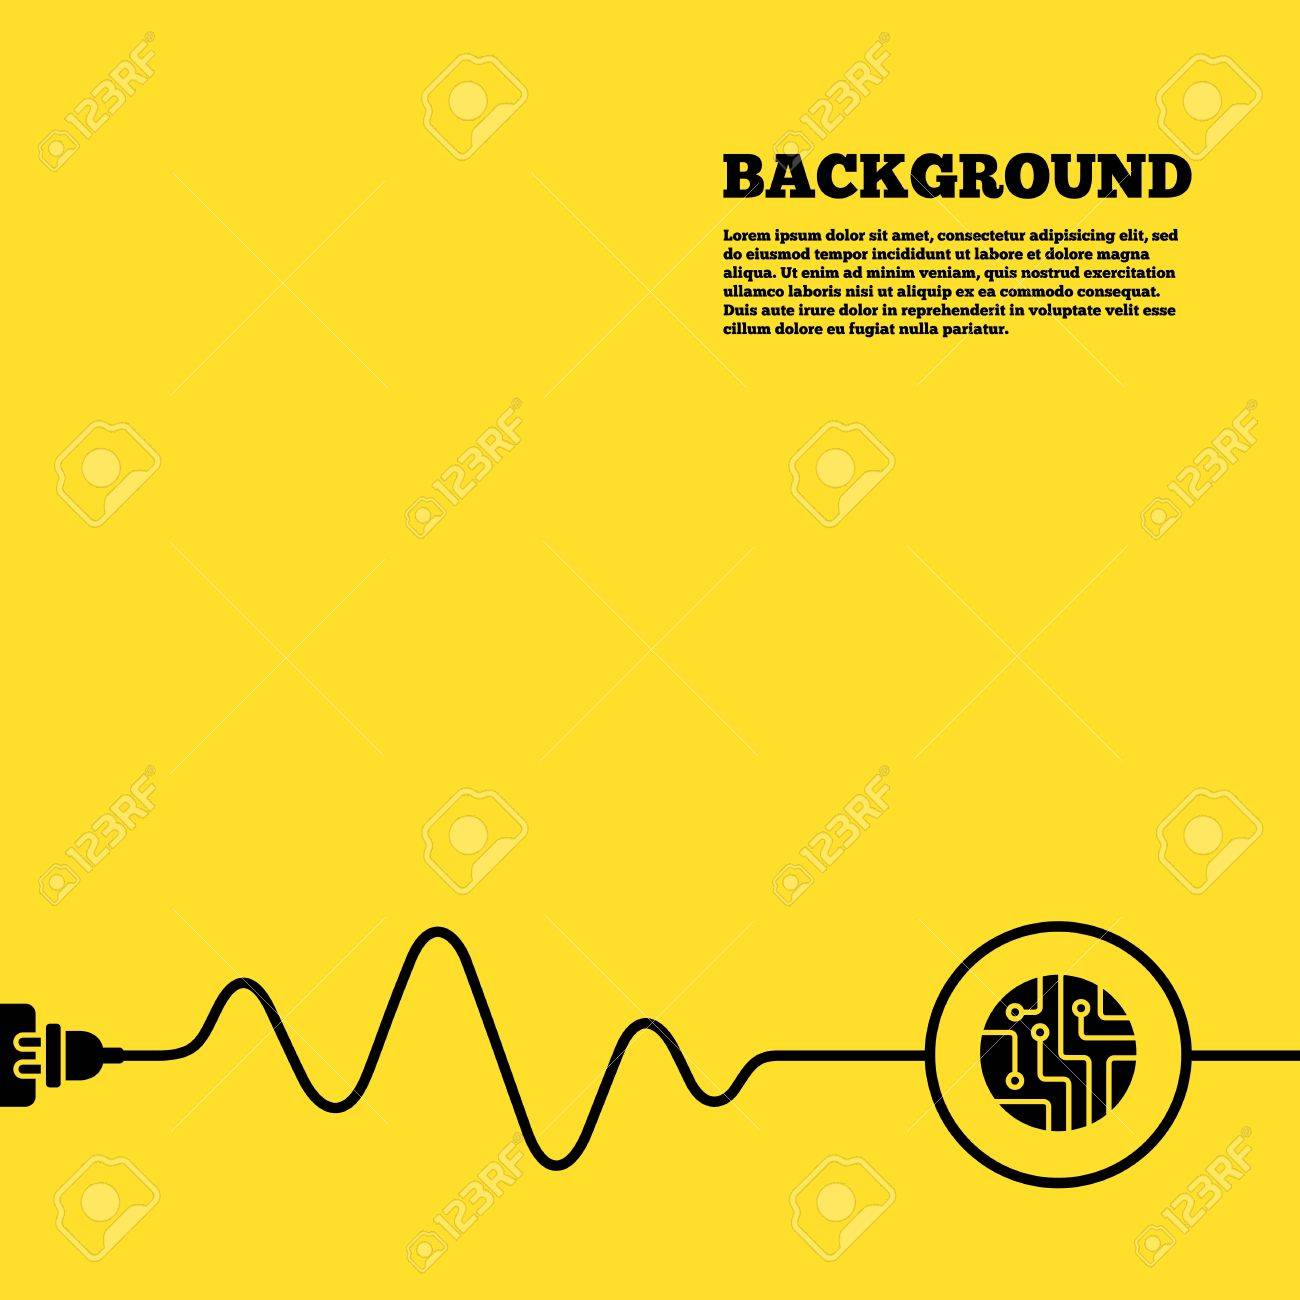 Orange Circuit Board Plugs Quick Start Guide Of Wiring Diagram Rockerverb Electric Plug Background Sign Icon Technology Rh 123rf Com 2 Pin